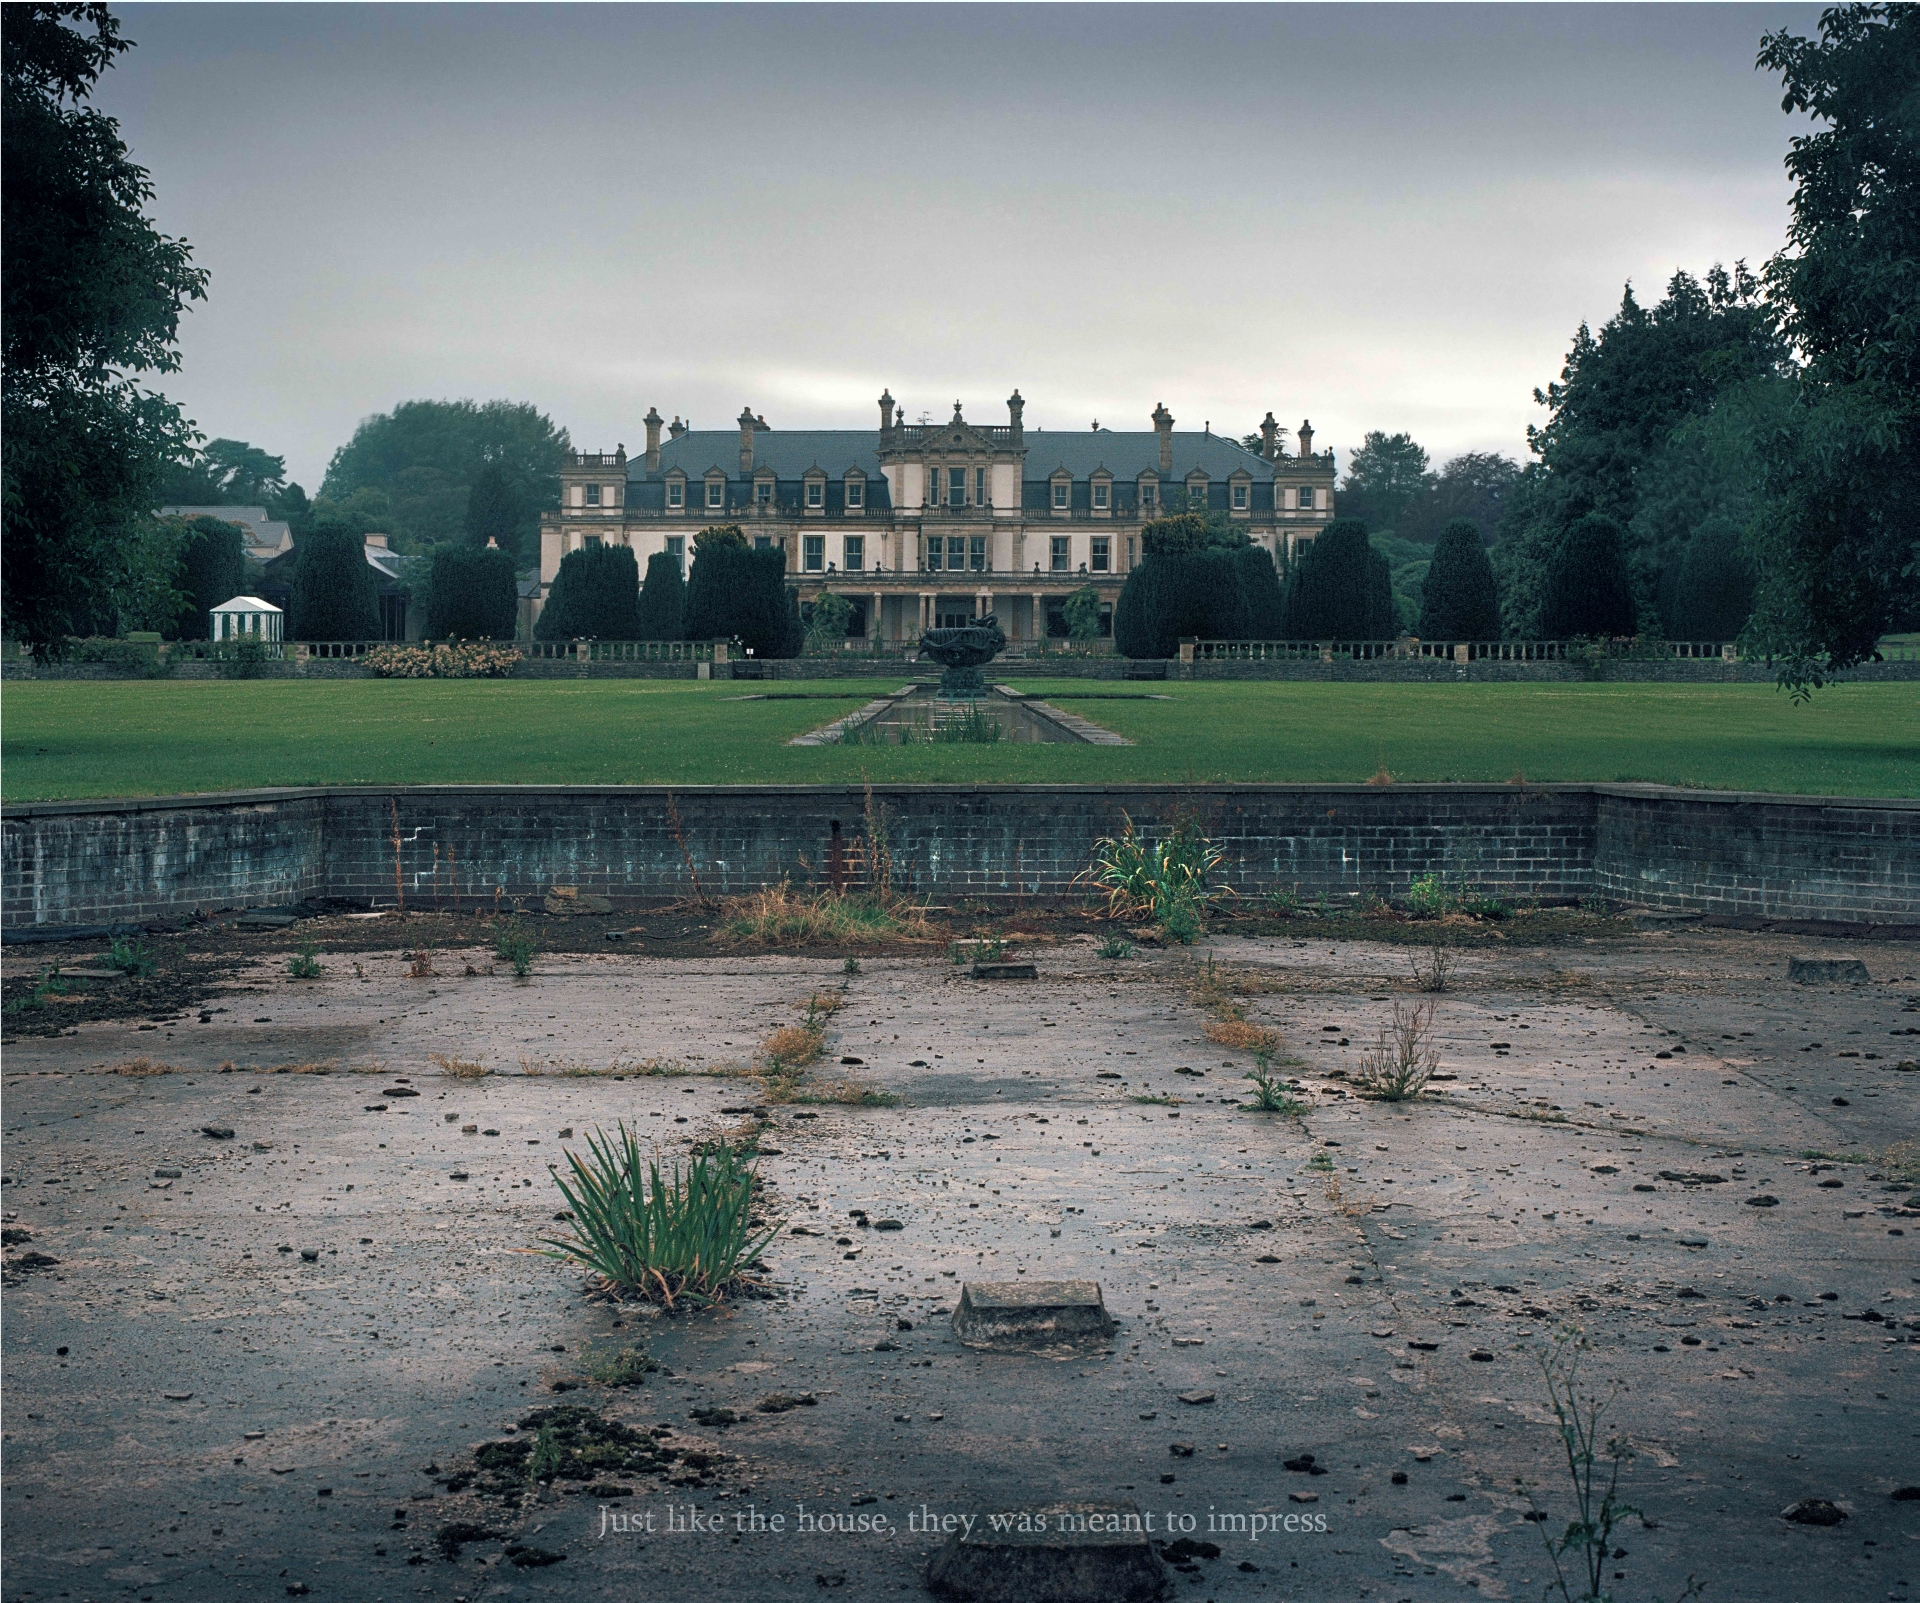 3_dyffryn-house-from-the-distance